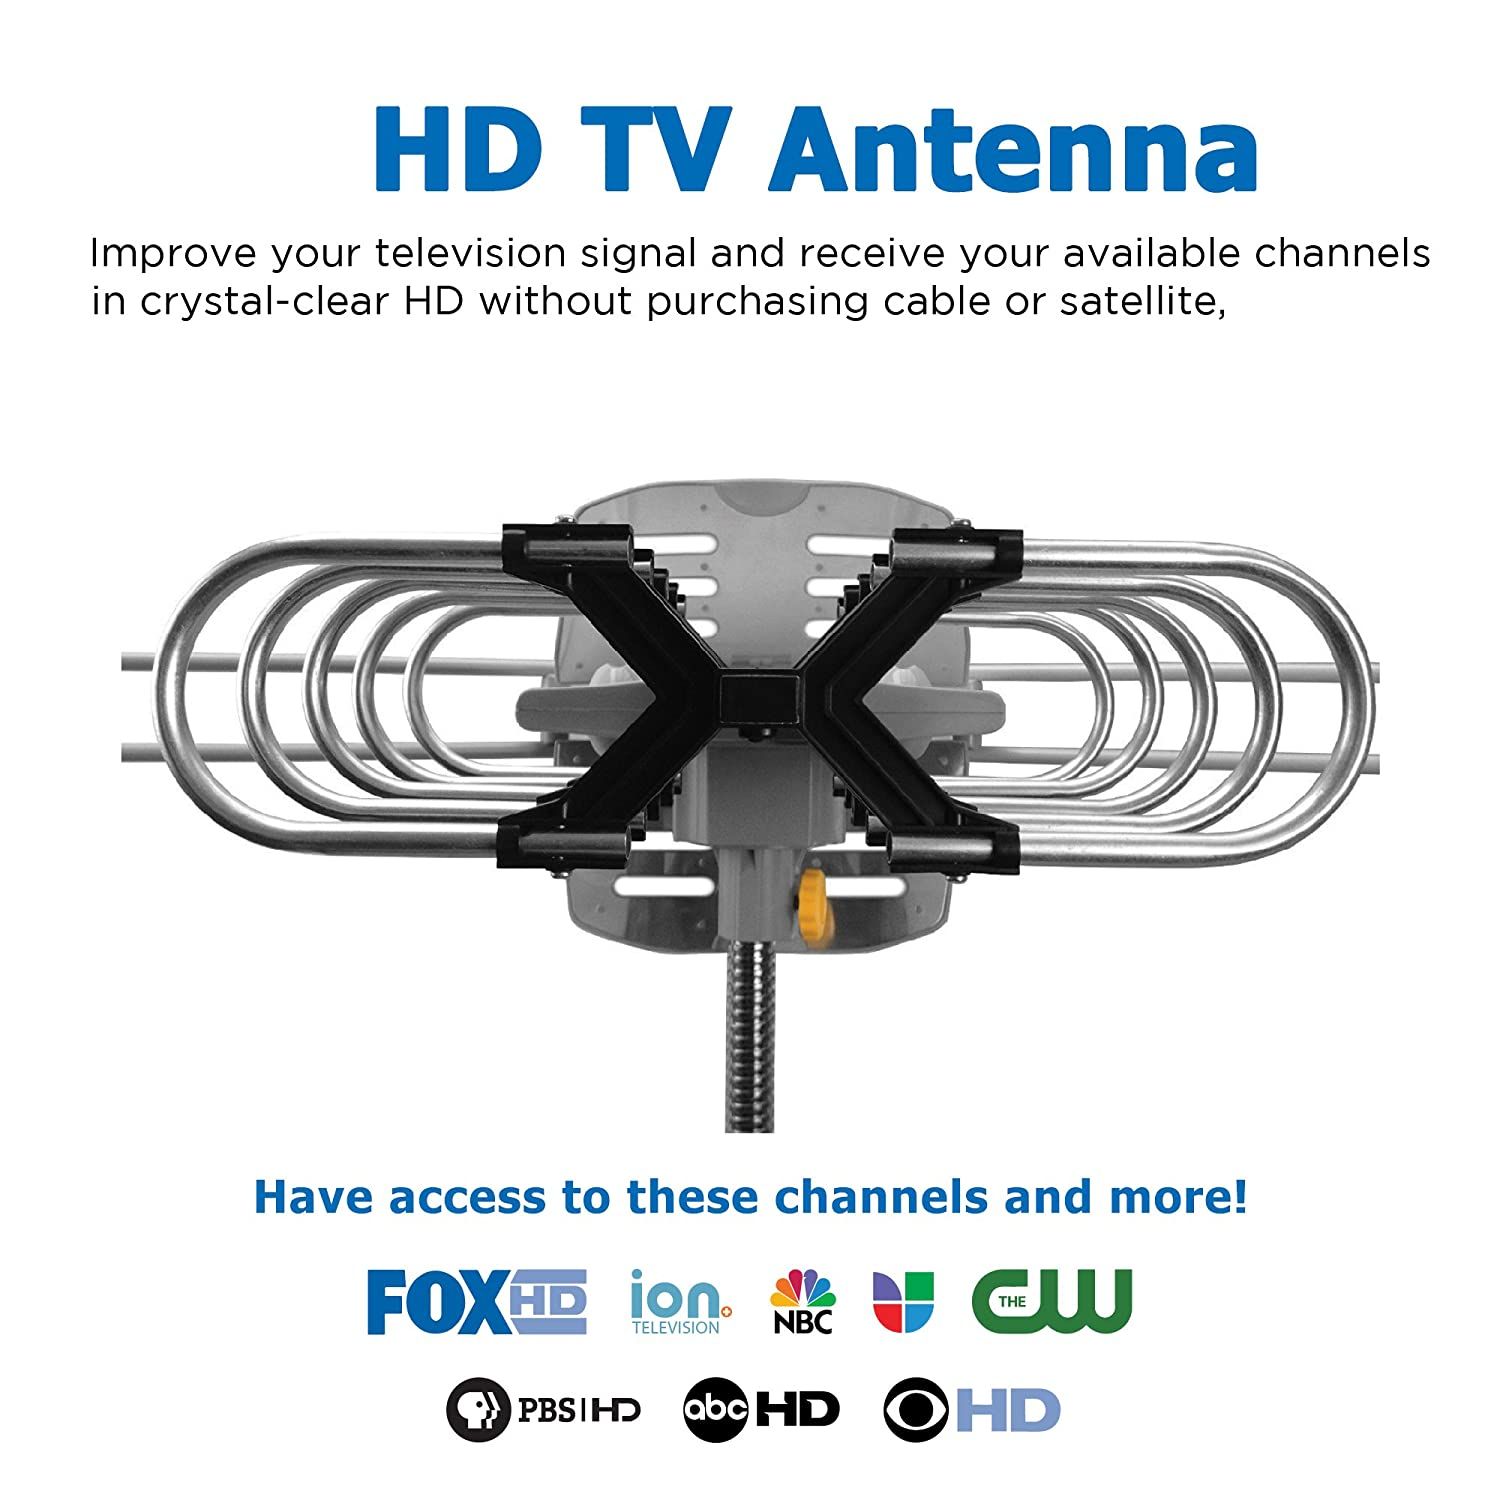 Vansky Outdoor 150 Mile Motorized 360 Degree Rotation Crystal Focus Wiring Diagrams Ota Amplified Hd Tv Antenna For 2 Tvs Support Uhf Vhf 1080p Channels Wireless Remote